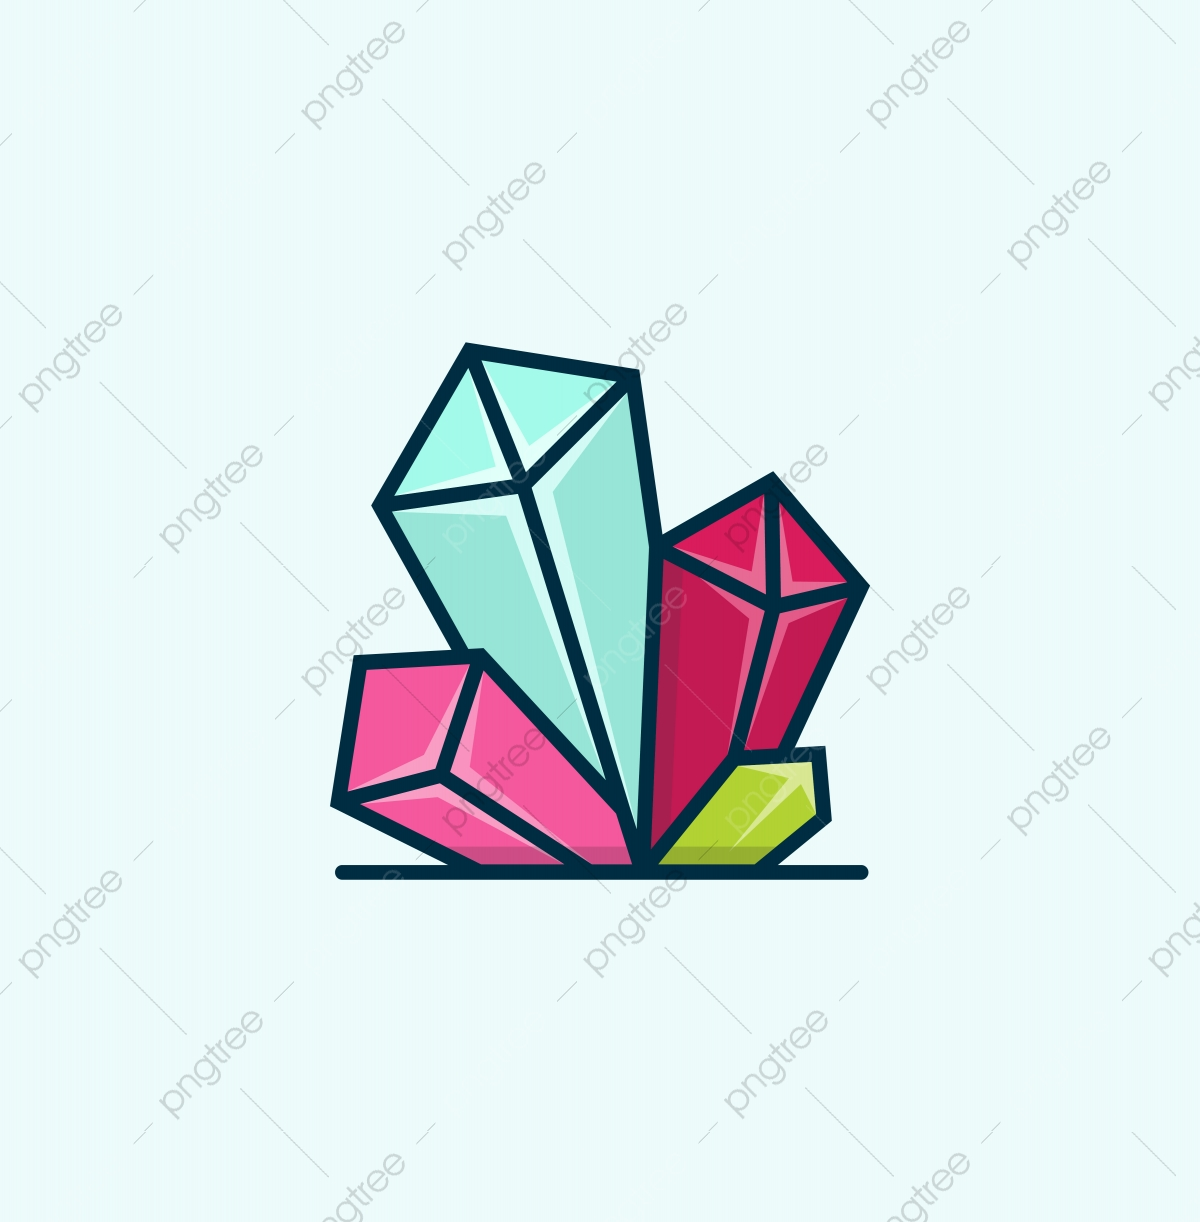 Gem Diamond Nature Design Fashion Logo Template Fashion Icons Icons Converter Icons Fitness Png And Vector With Transparent Background For Free Download